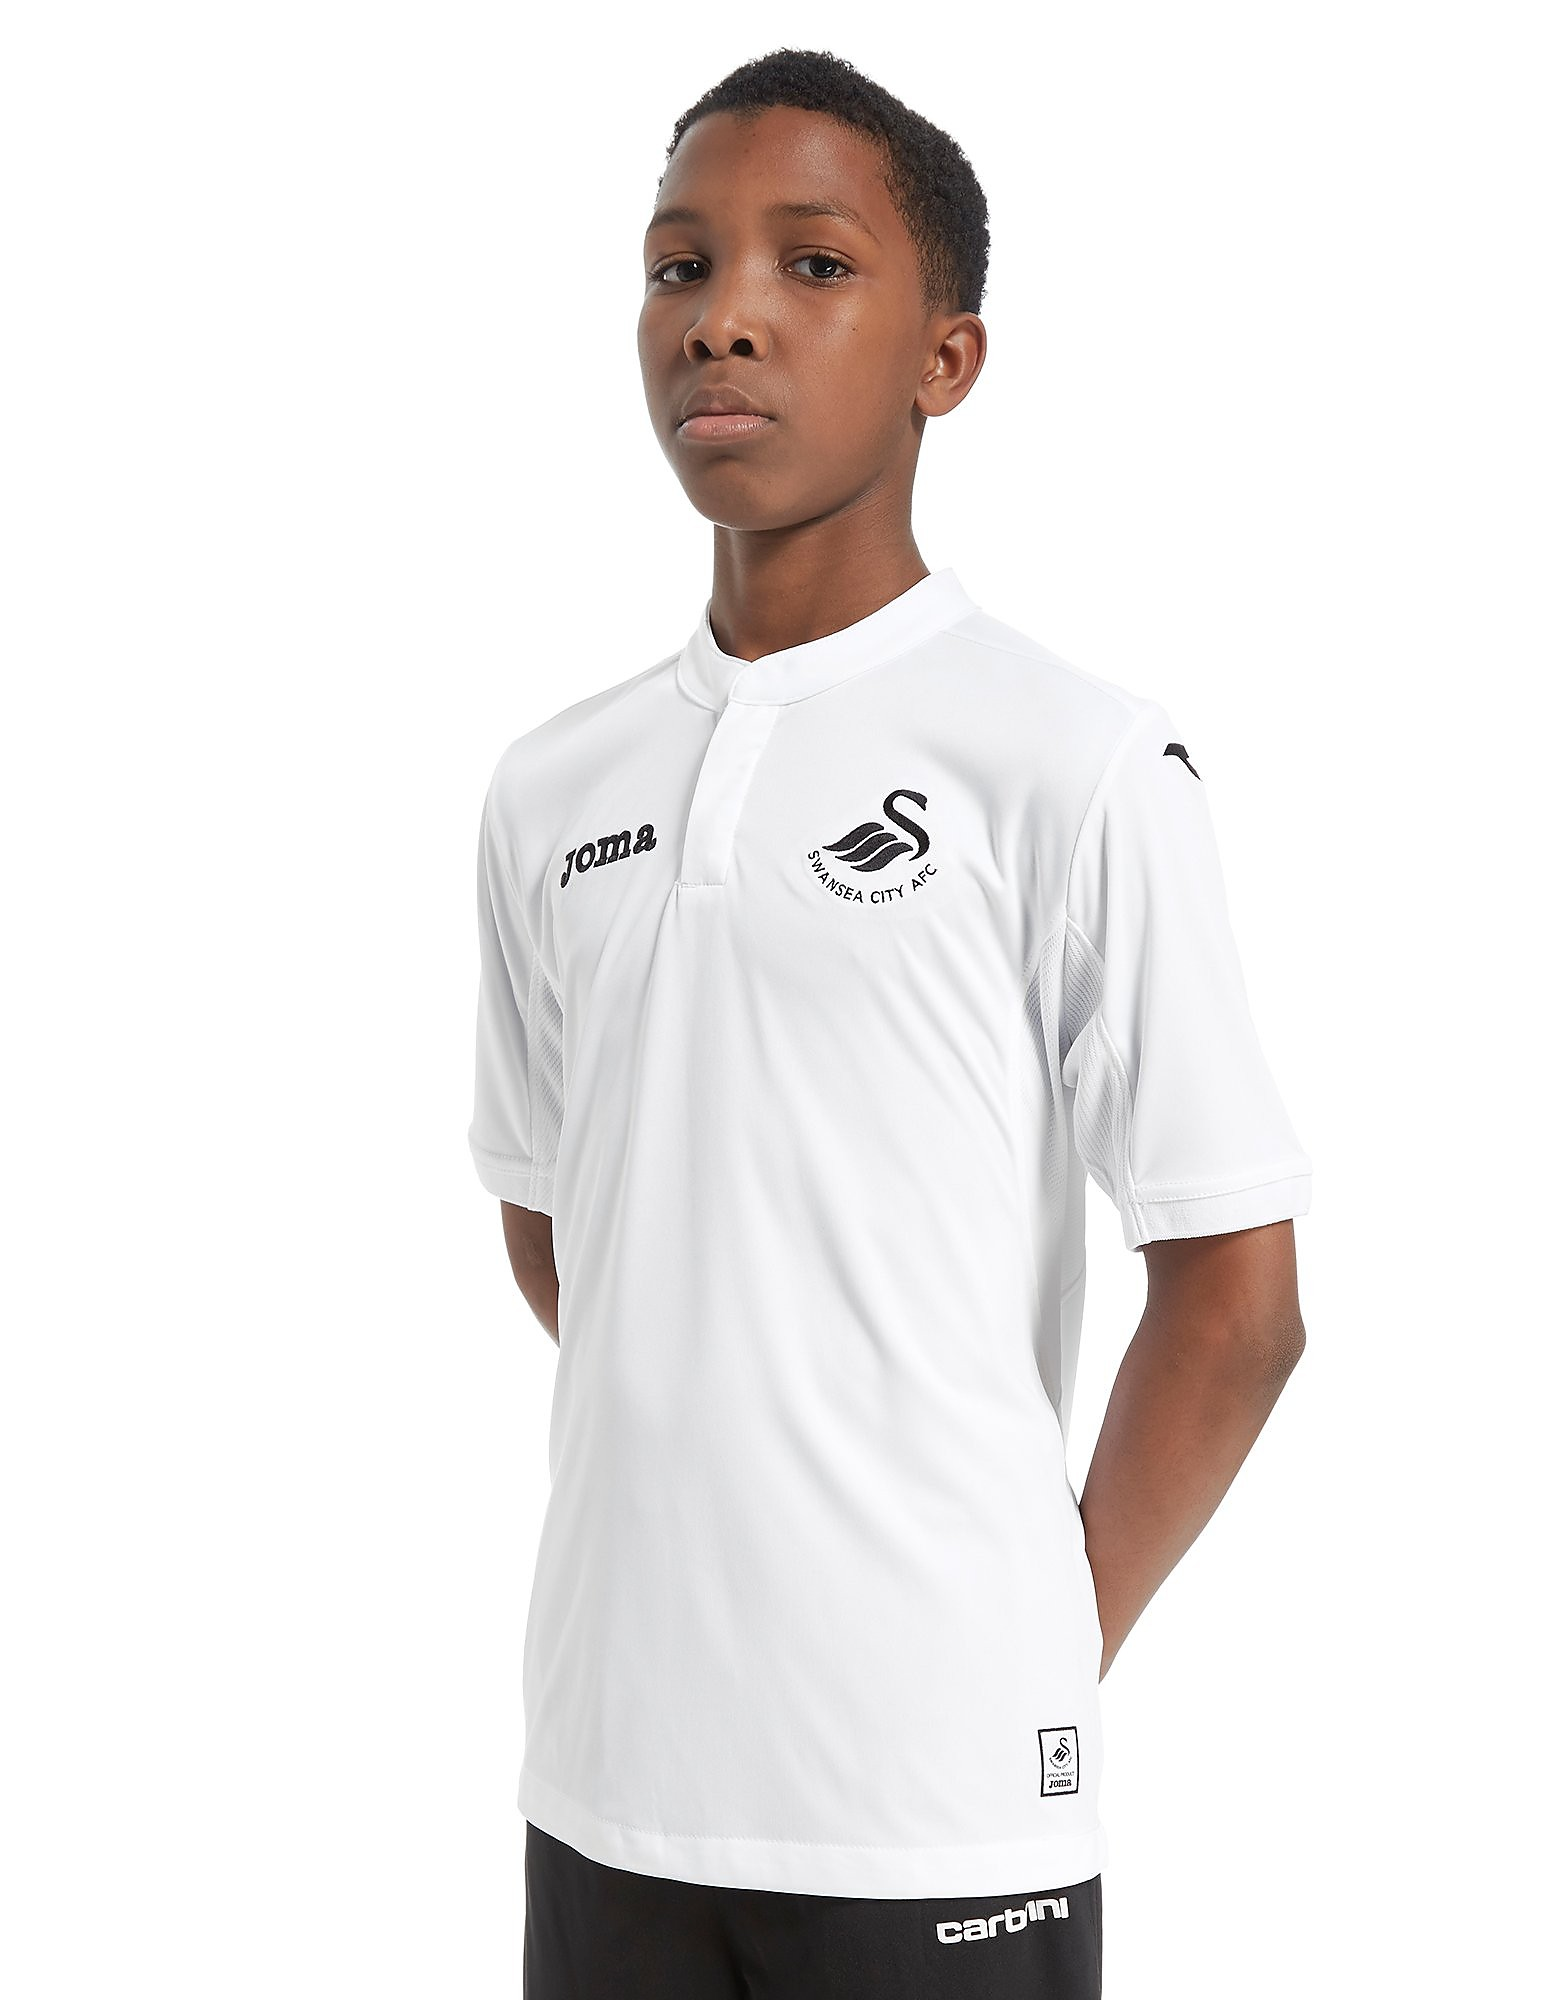 Joma Swansea City FC 2016/17 Home Shirt Junior